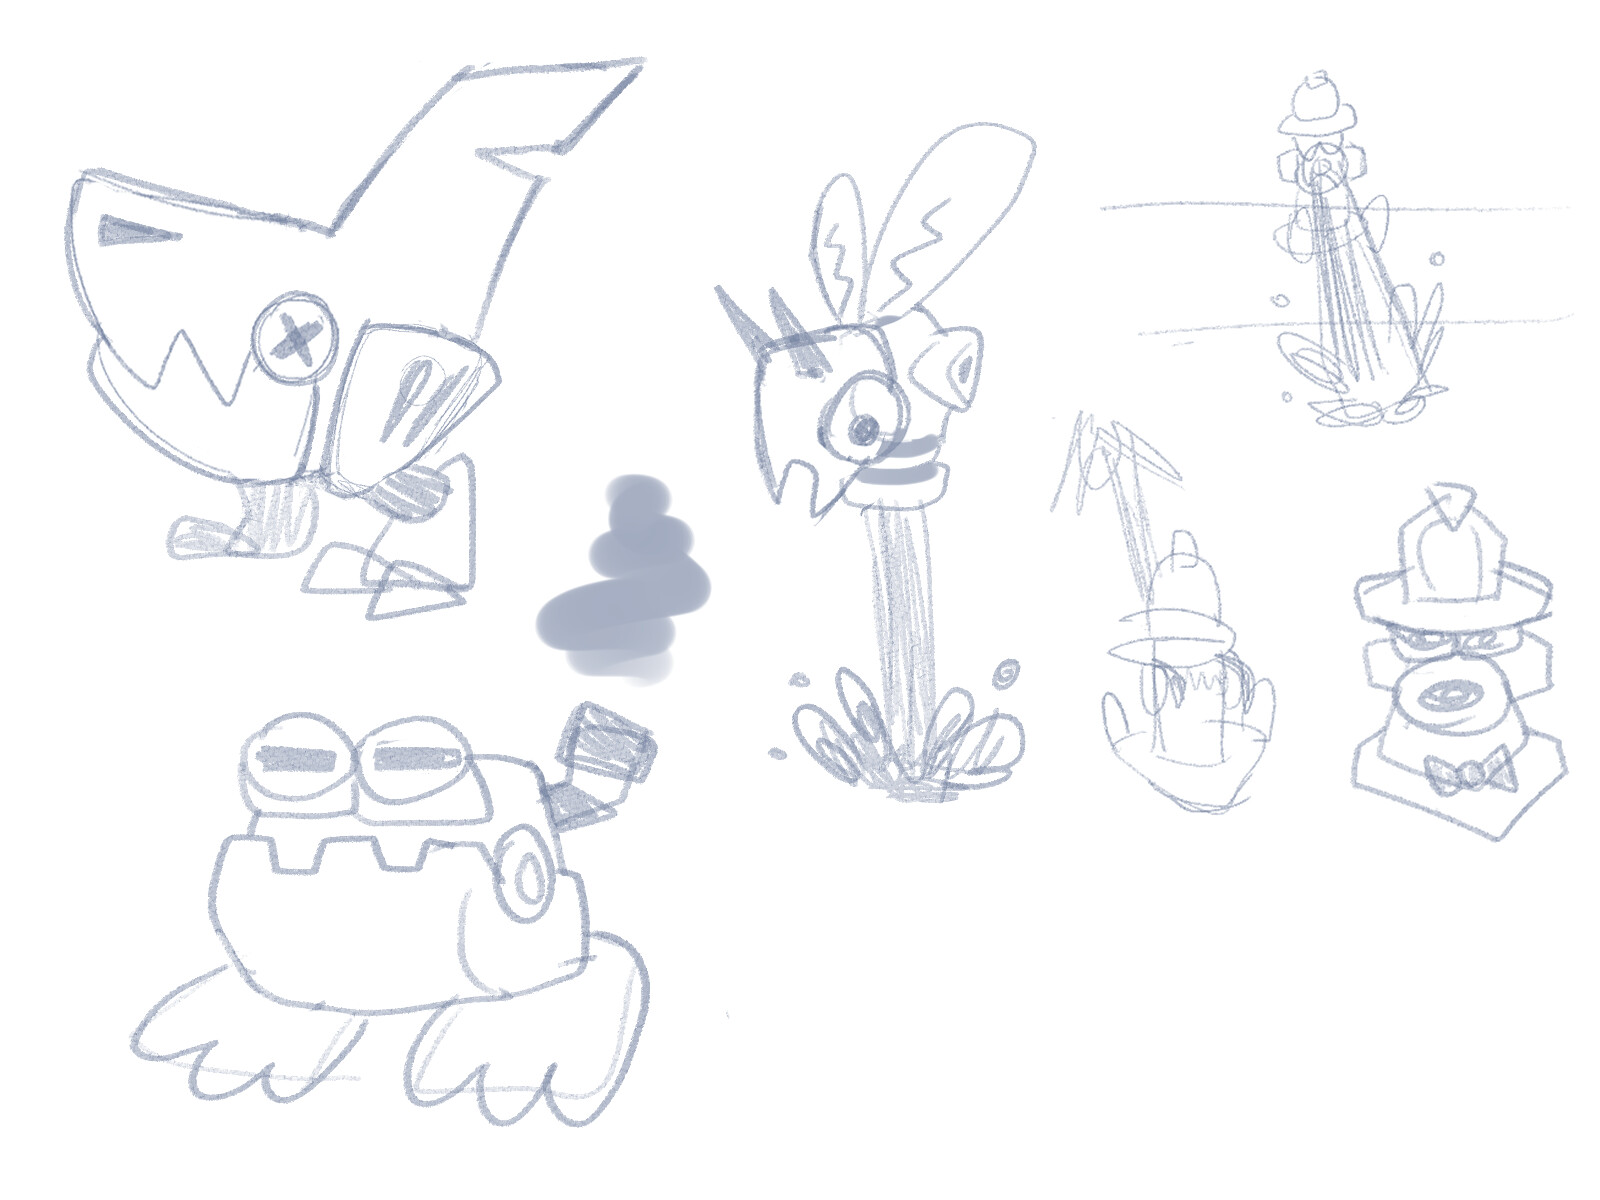 Mostly unused enemy concepts